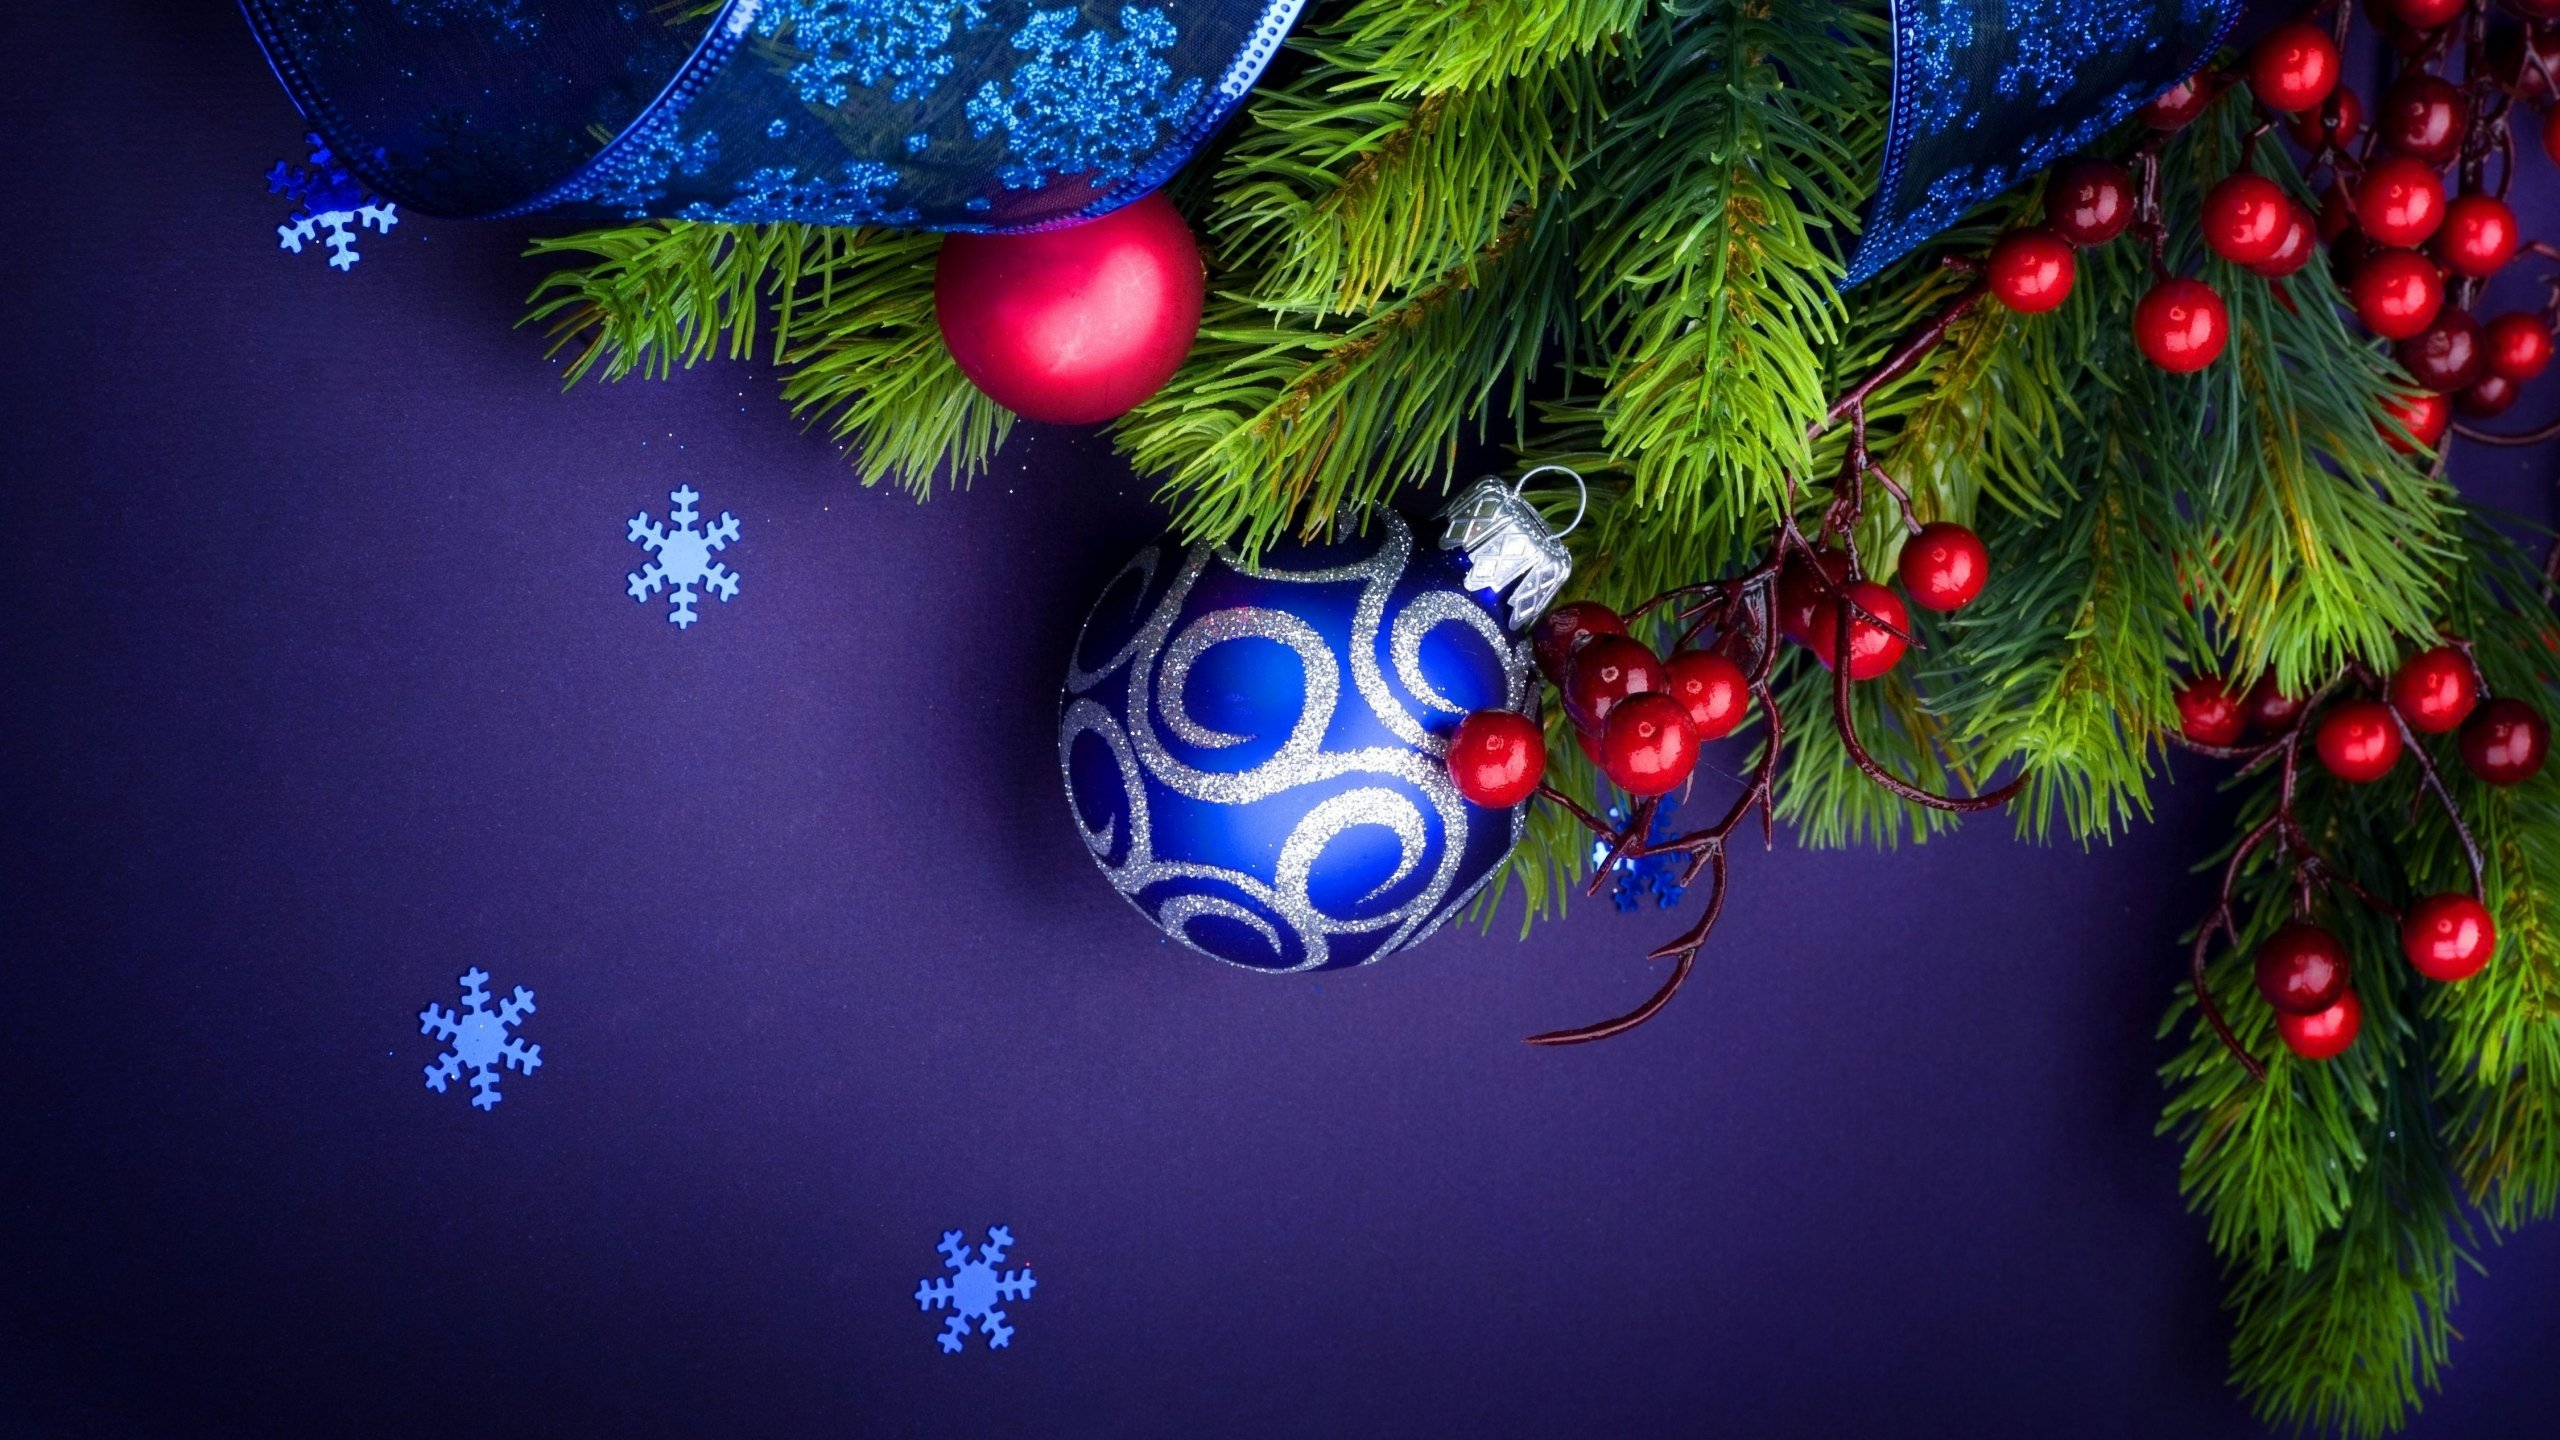 Blue Christmas Wallpaper HD 2560x1440